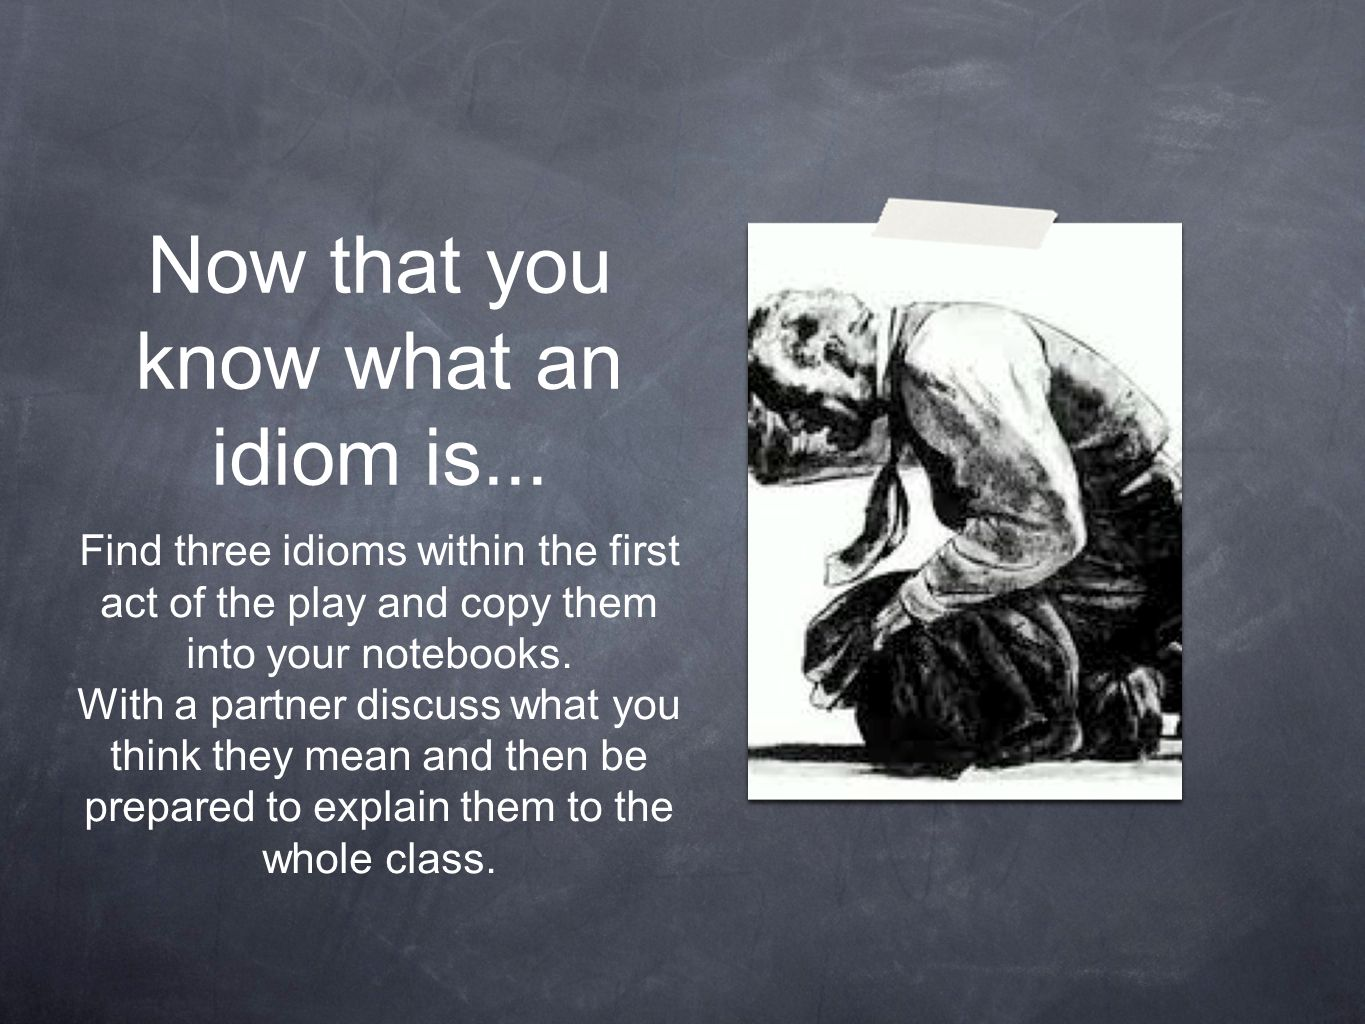 Now that you know what an idiom is... Find three idioms within the first act of the play and copy them into your notebooks. With a partner discuss wha